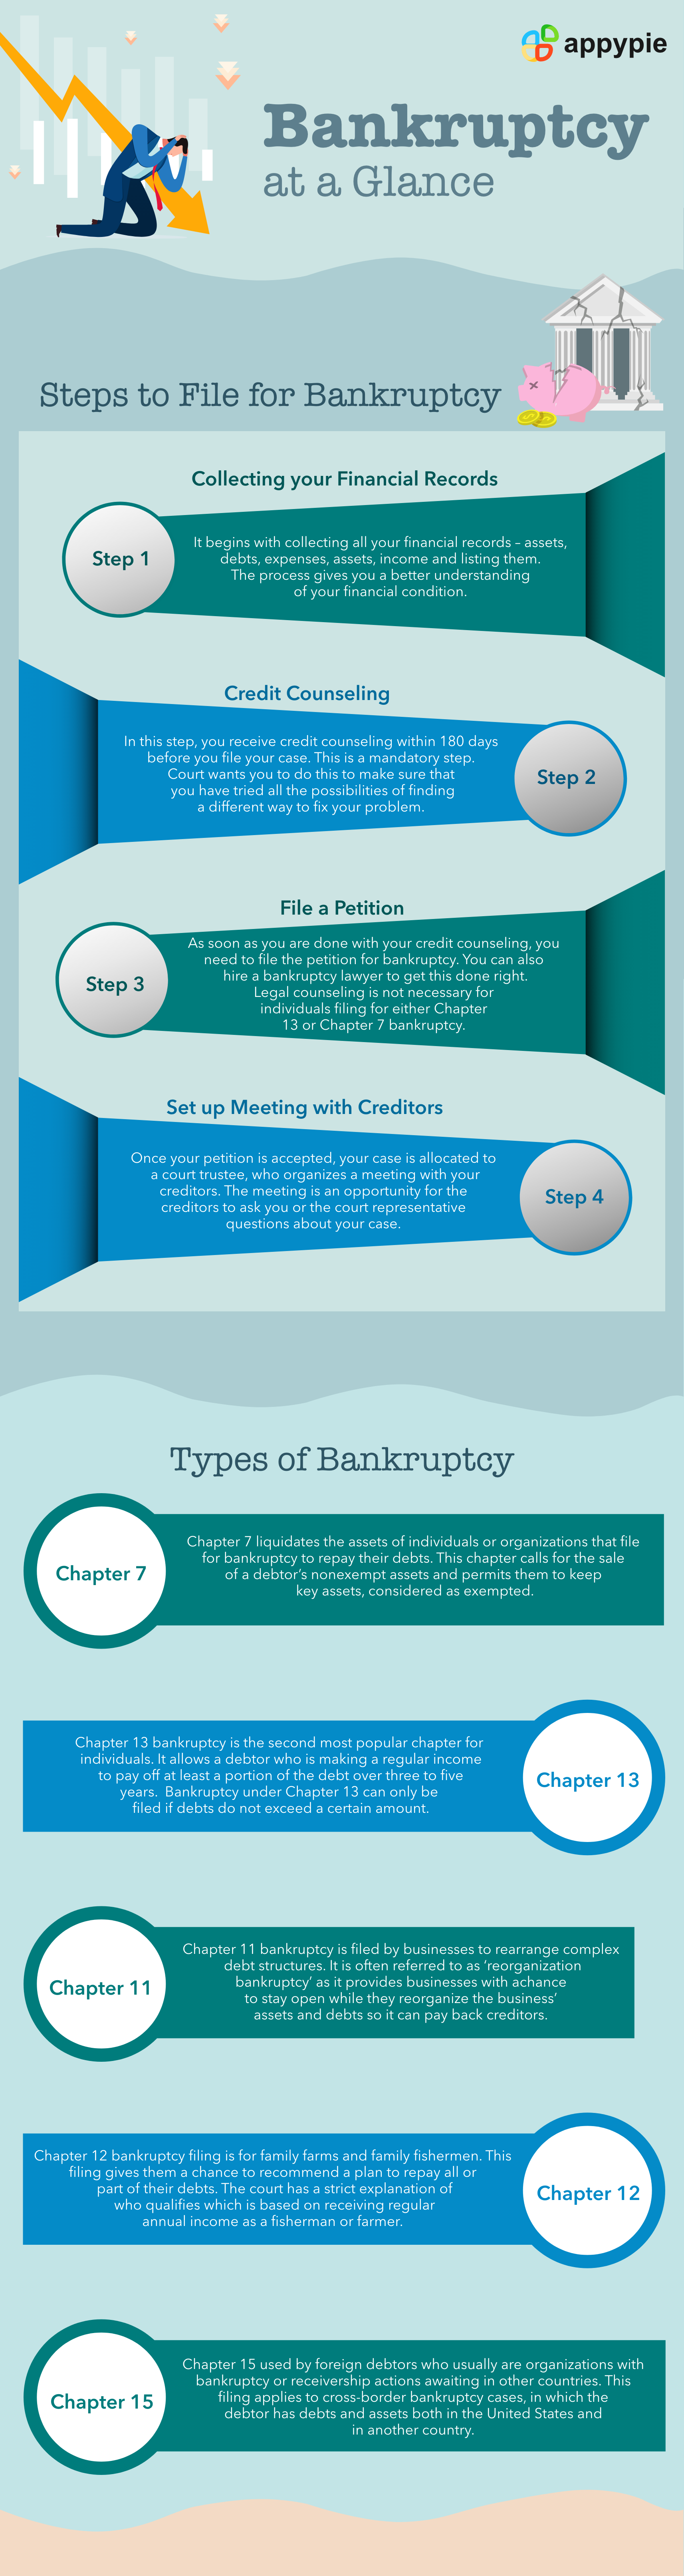 Appy Pie - What is Bankruptcy?